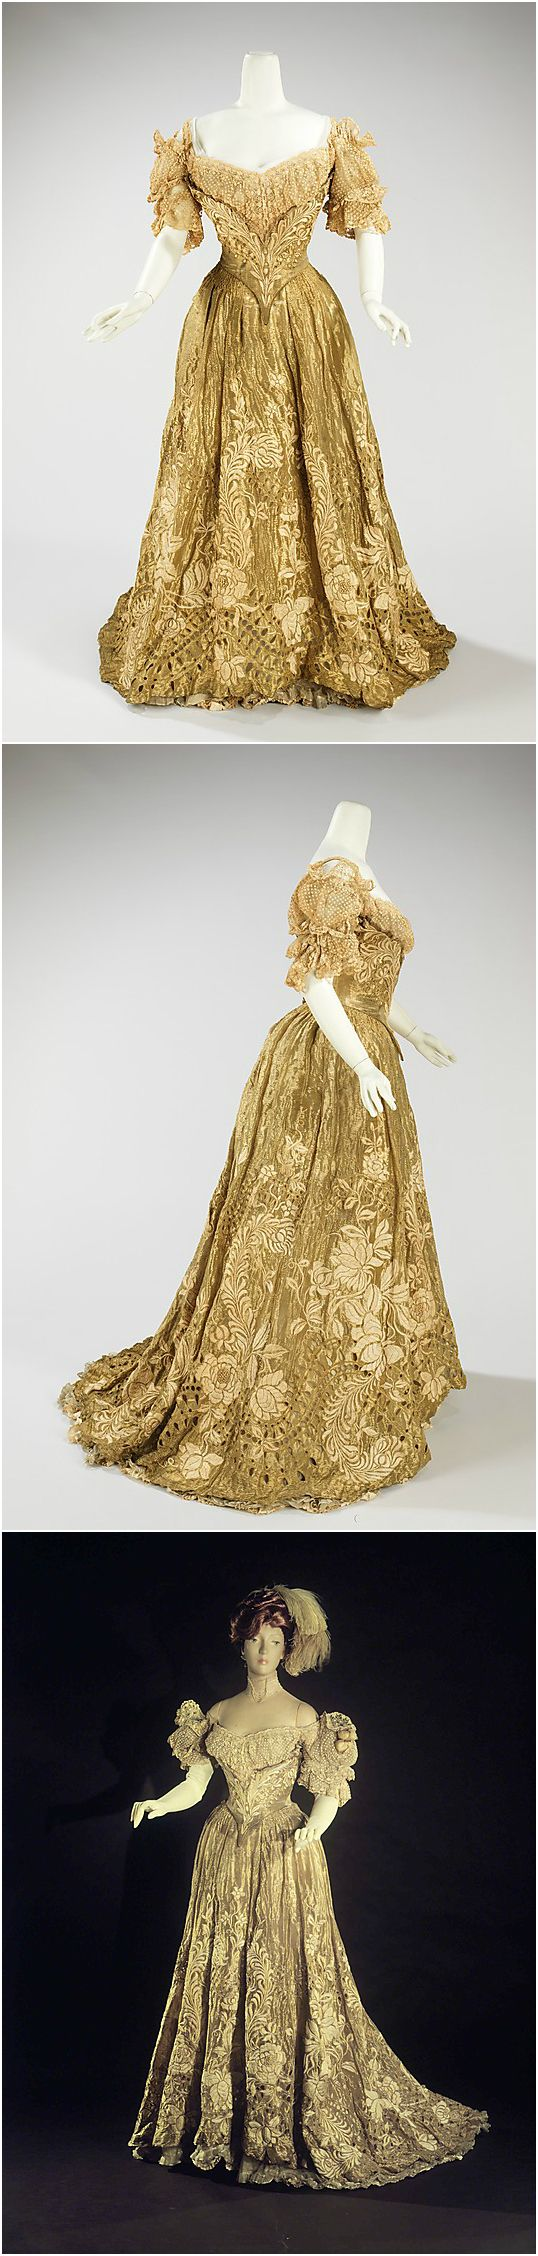 Ball gown by Jacques Doucet, 1898-1902, at the Met. See: http://www.metmuseum.org/collection/the-collection-online/search/158193?img=4